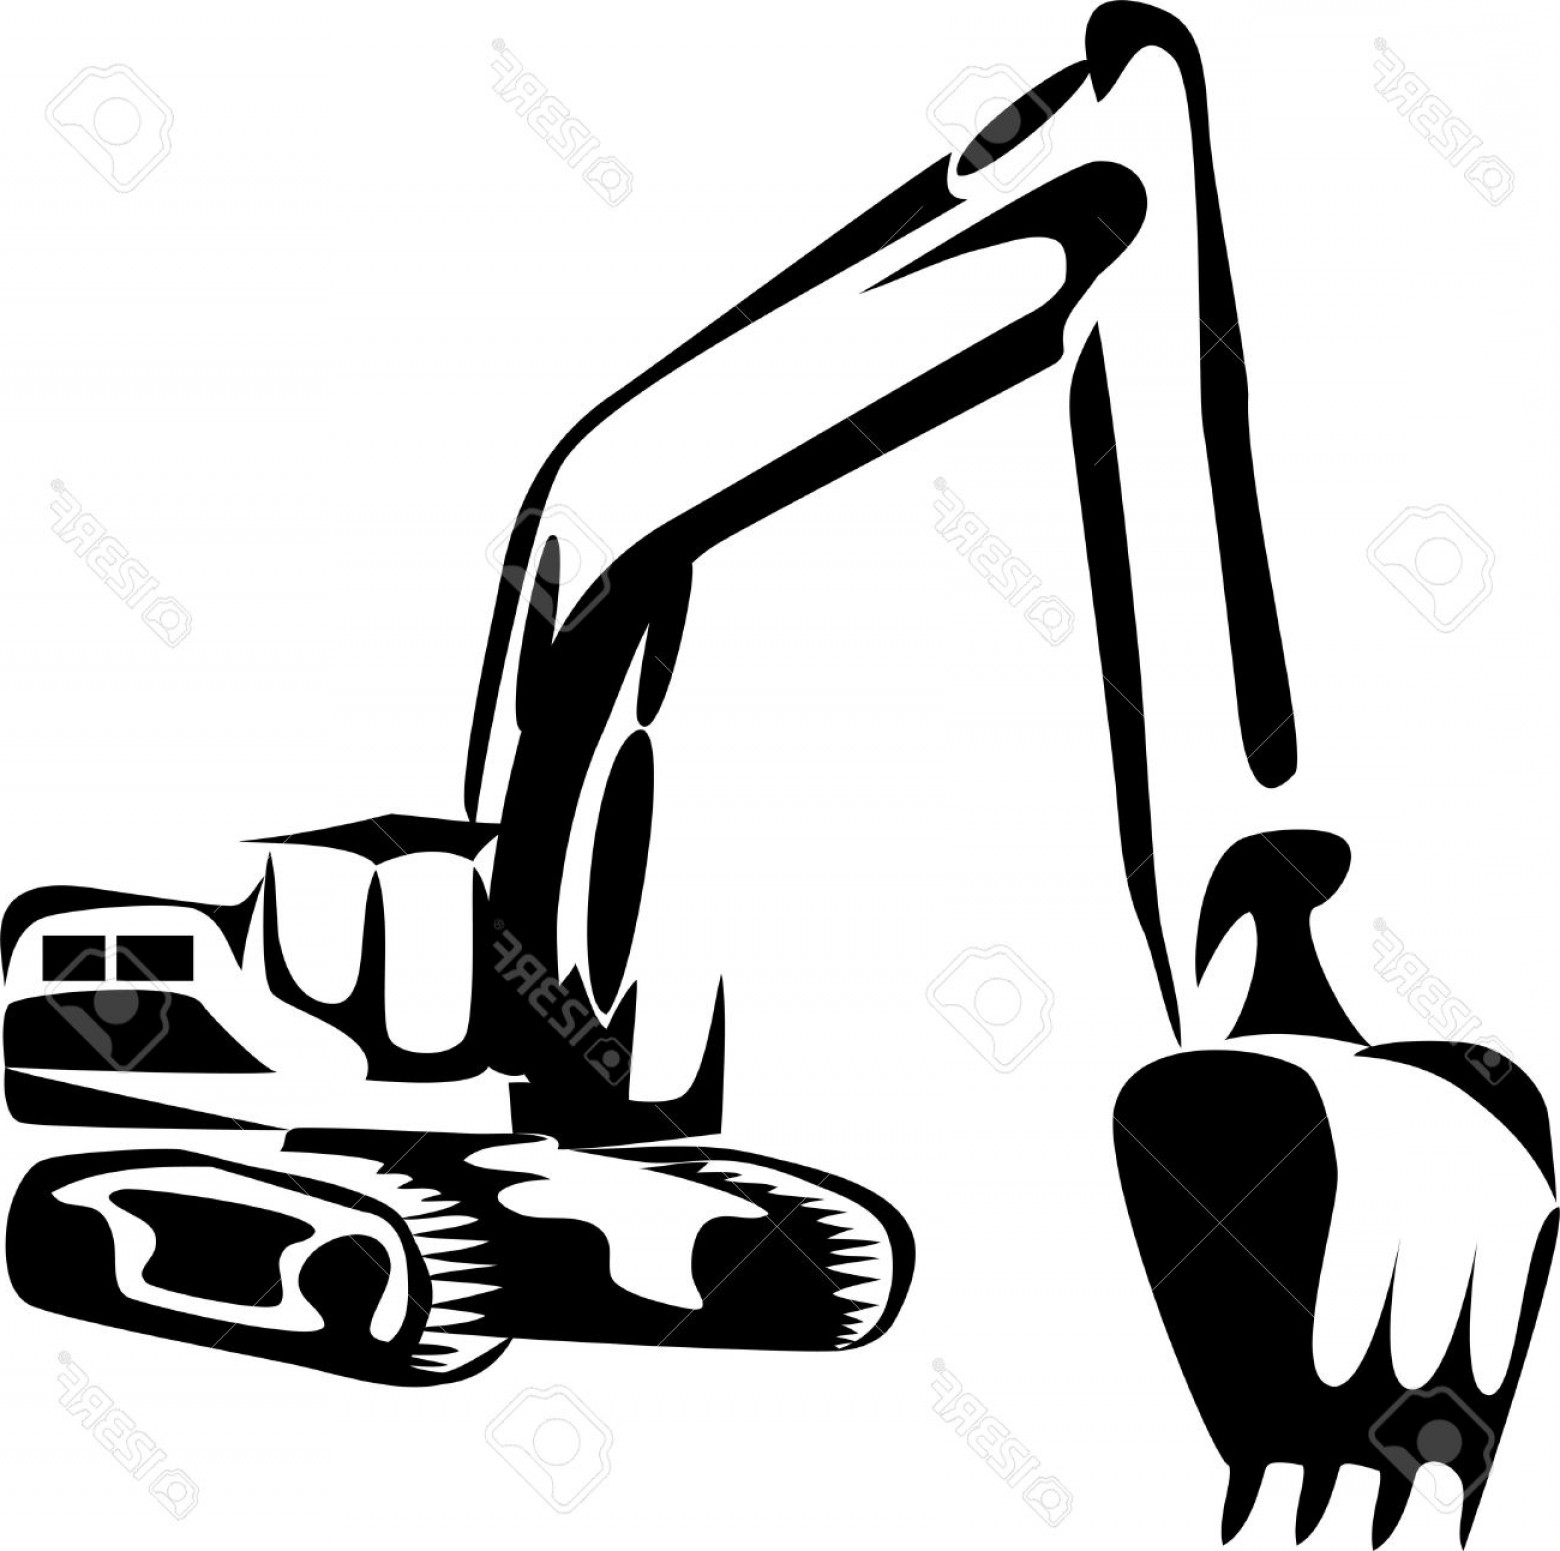 Caterpillar Trackhoe Vector: Sweet Looking Excavator Clipart Illustration Royalty Free Cliparts Vectors And Stock